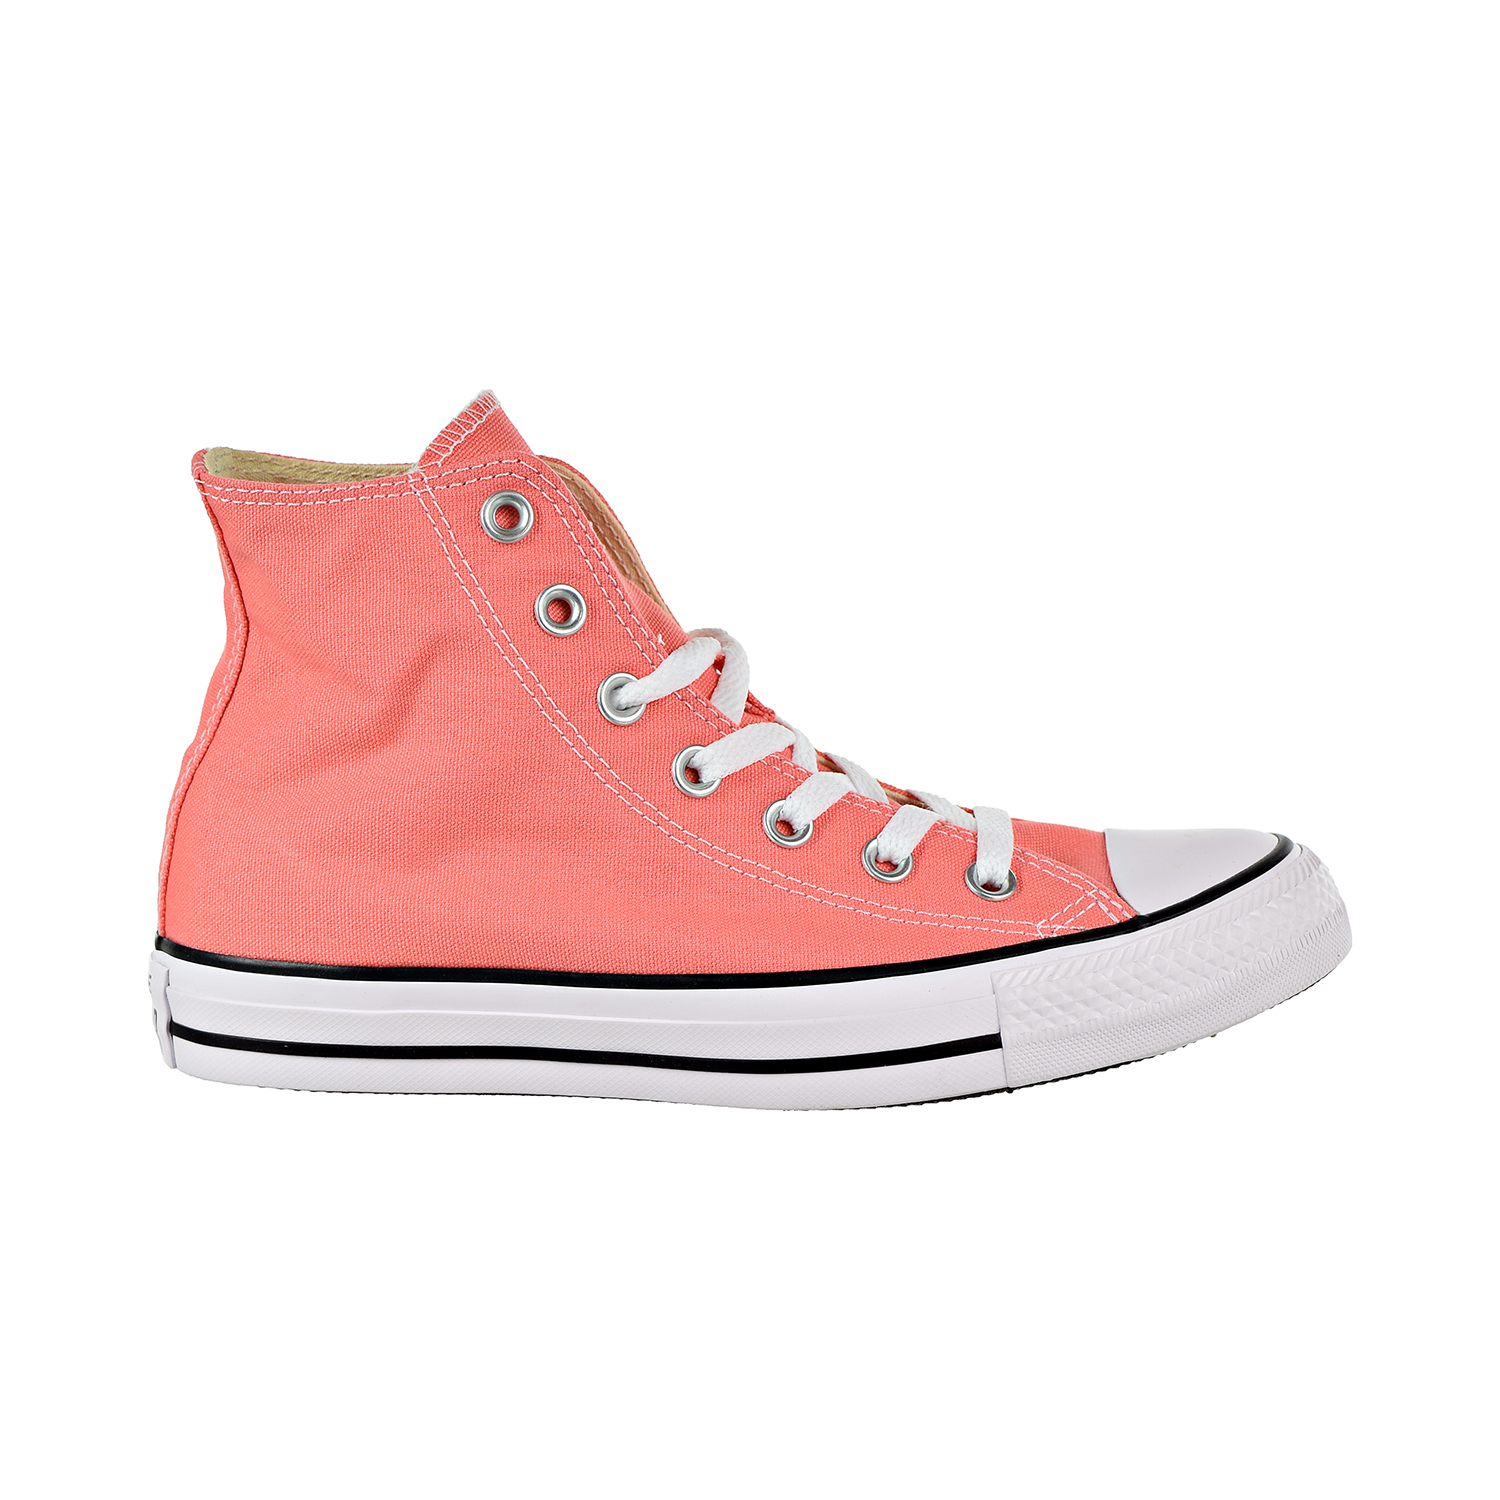 Details about Converse Chuck Taylor All Star Hi Big Kids' Men's Shoes Sunblush 157611f